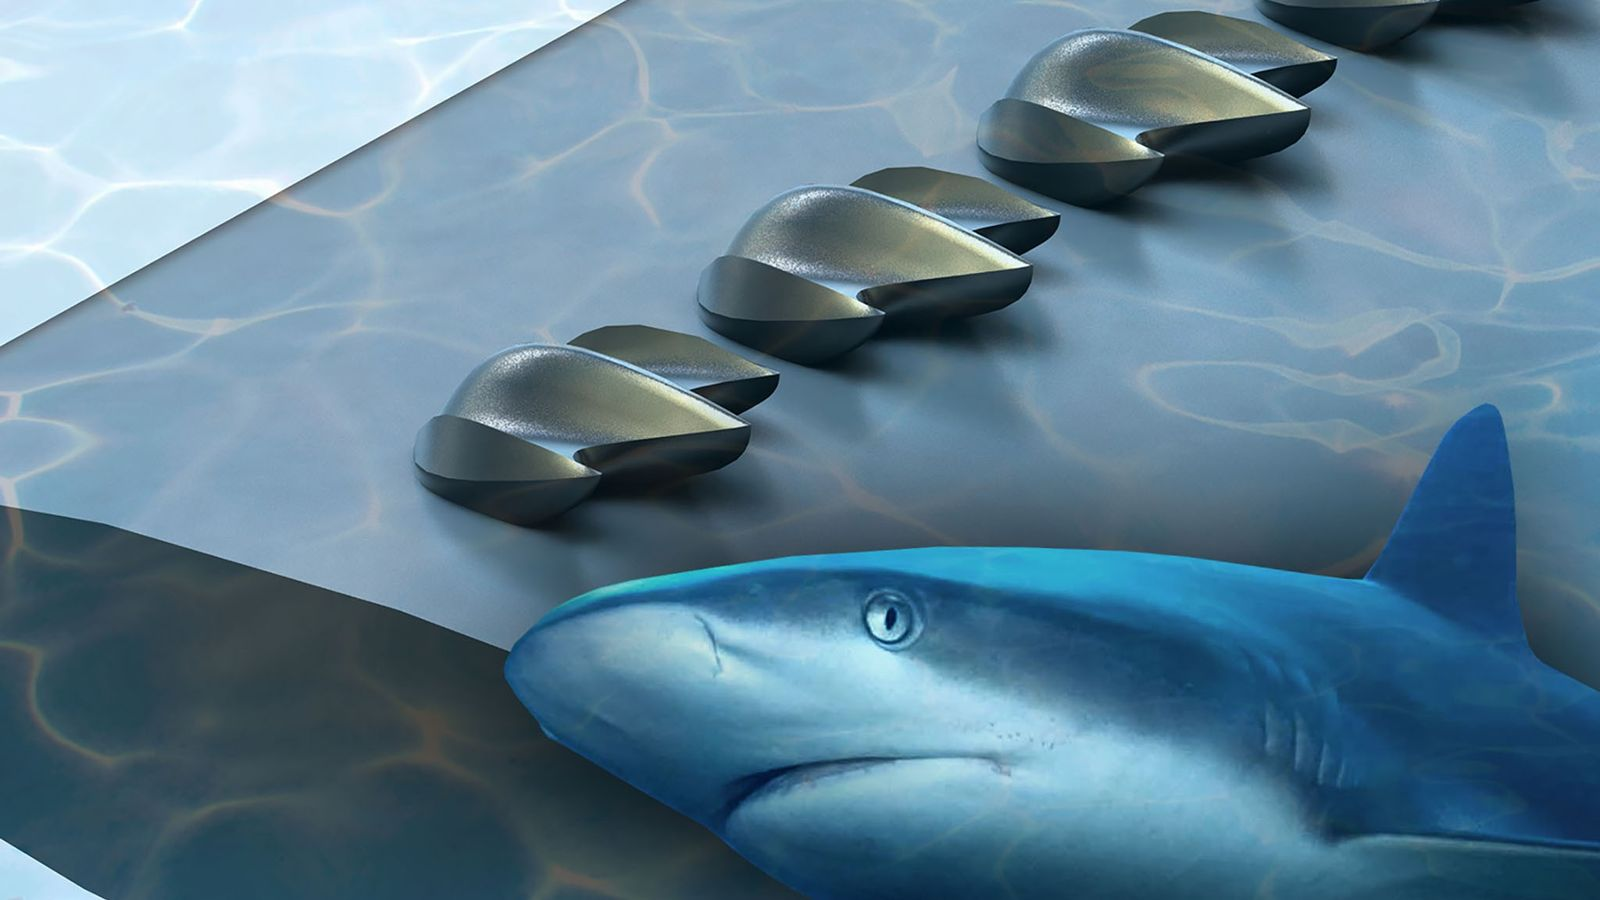 A new structure inspired by shark skin could improve the aerodynamic performance of planes, wind turbines, ...